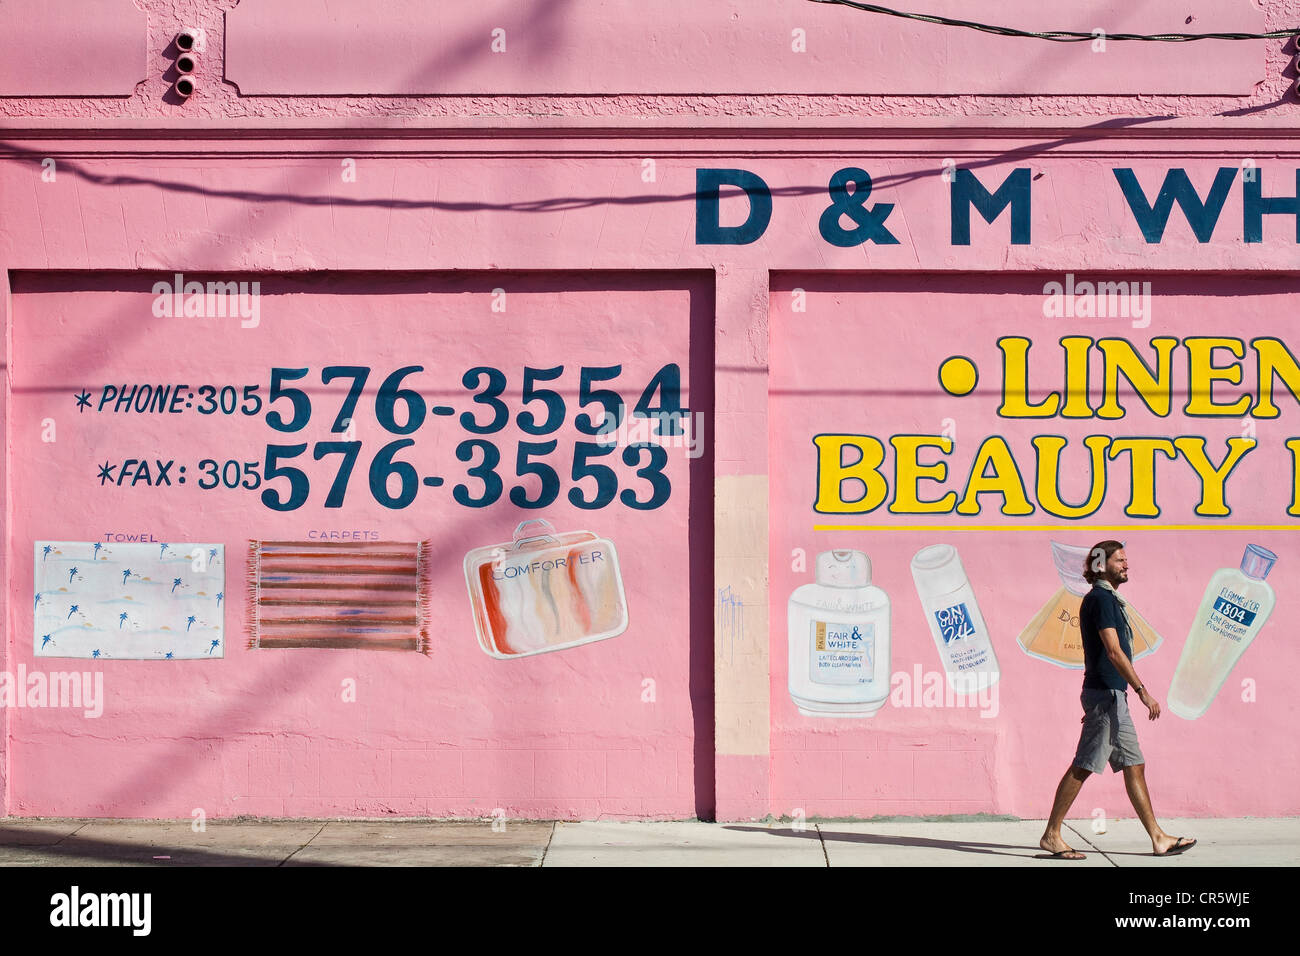 United States, Florida, Miami, Wynwood Art District, Du0026M Wholesale Shop,  Cosmetic Products And Bathroom Accessories